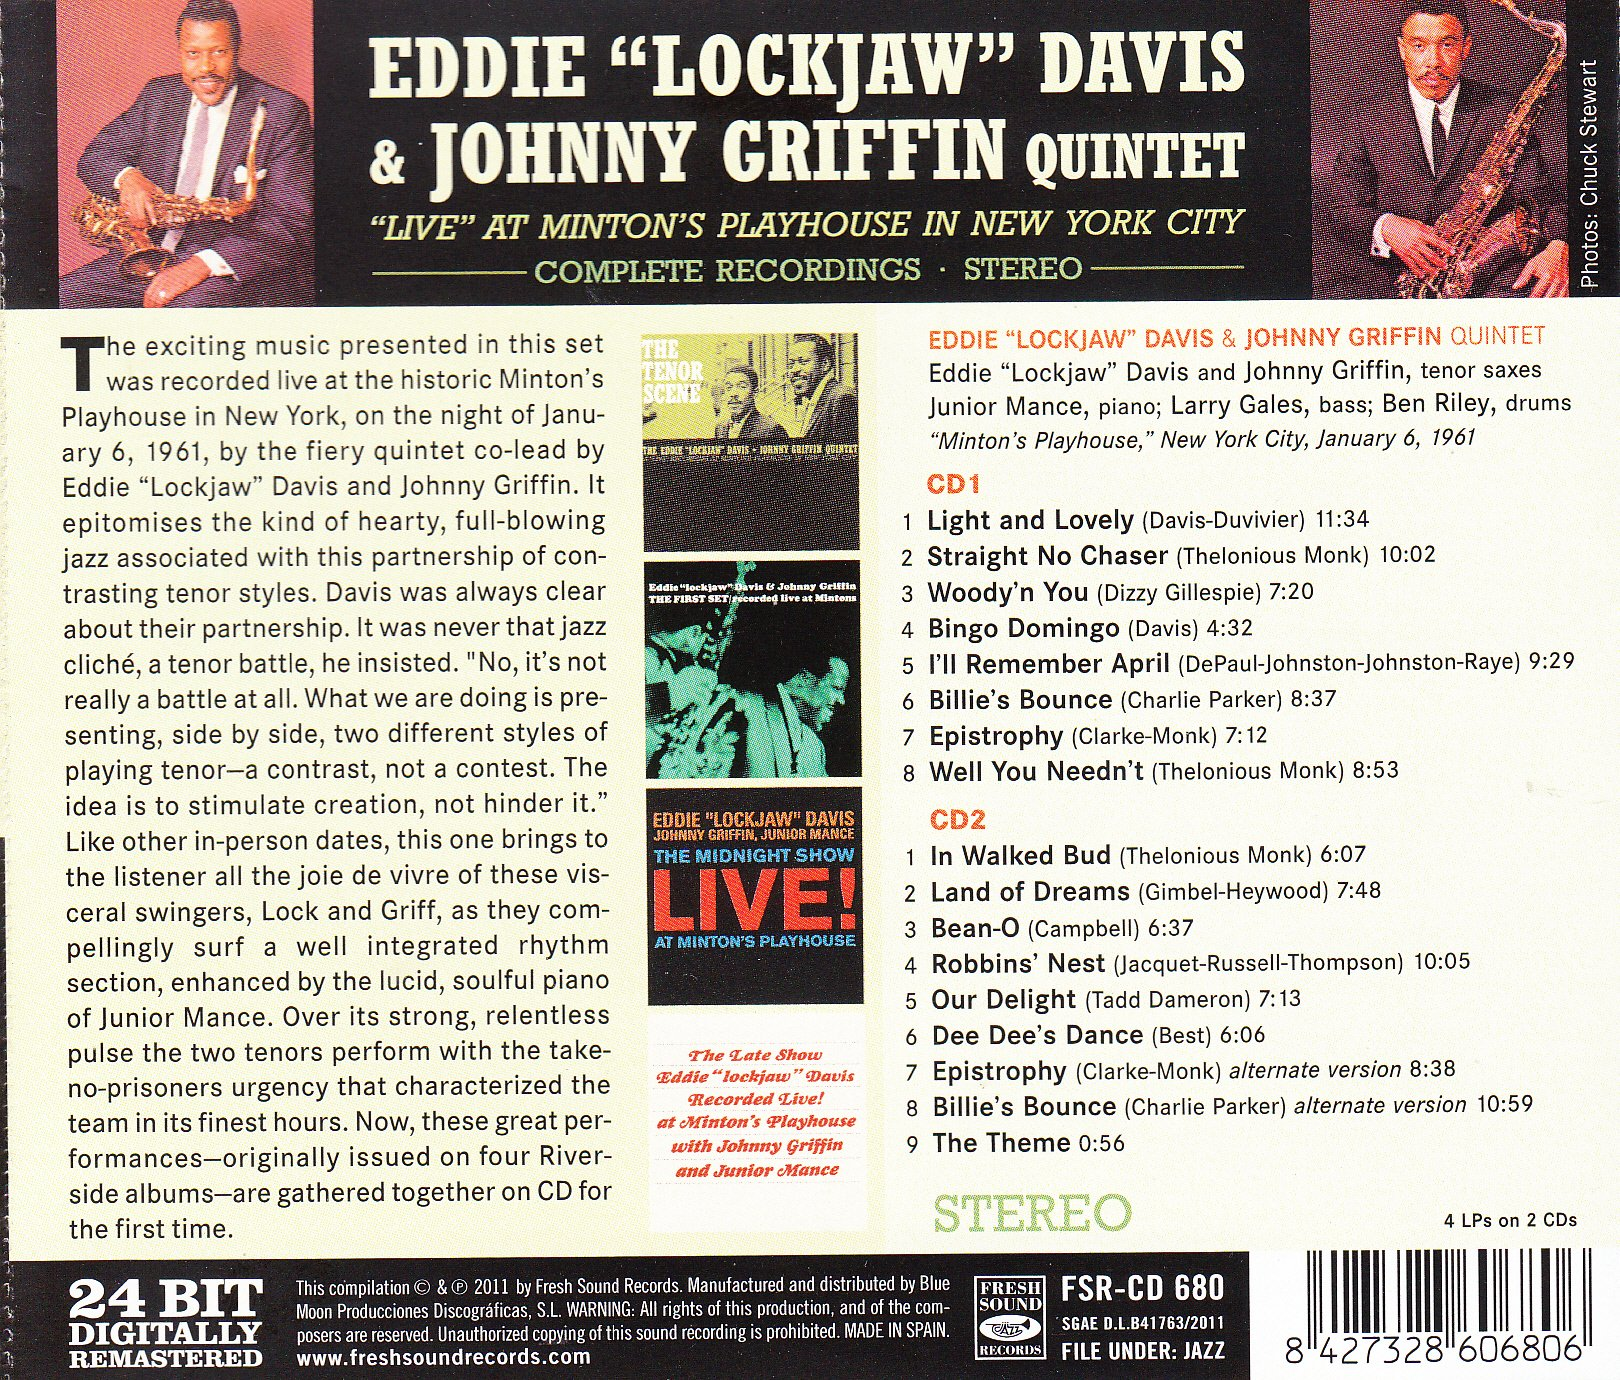 Eddie Lockjaw Davis & Johnny Griffin Quintet. Live at Mintons Playhouse in New York City. Complete Recordings by Fresh Sound Records (FSRCD 680)